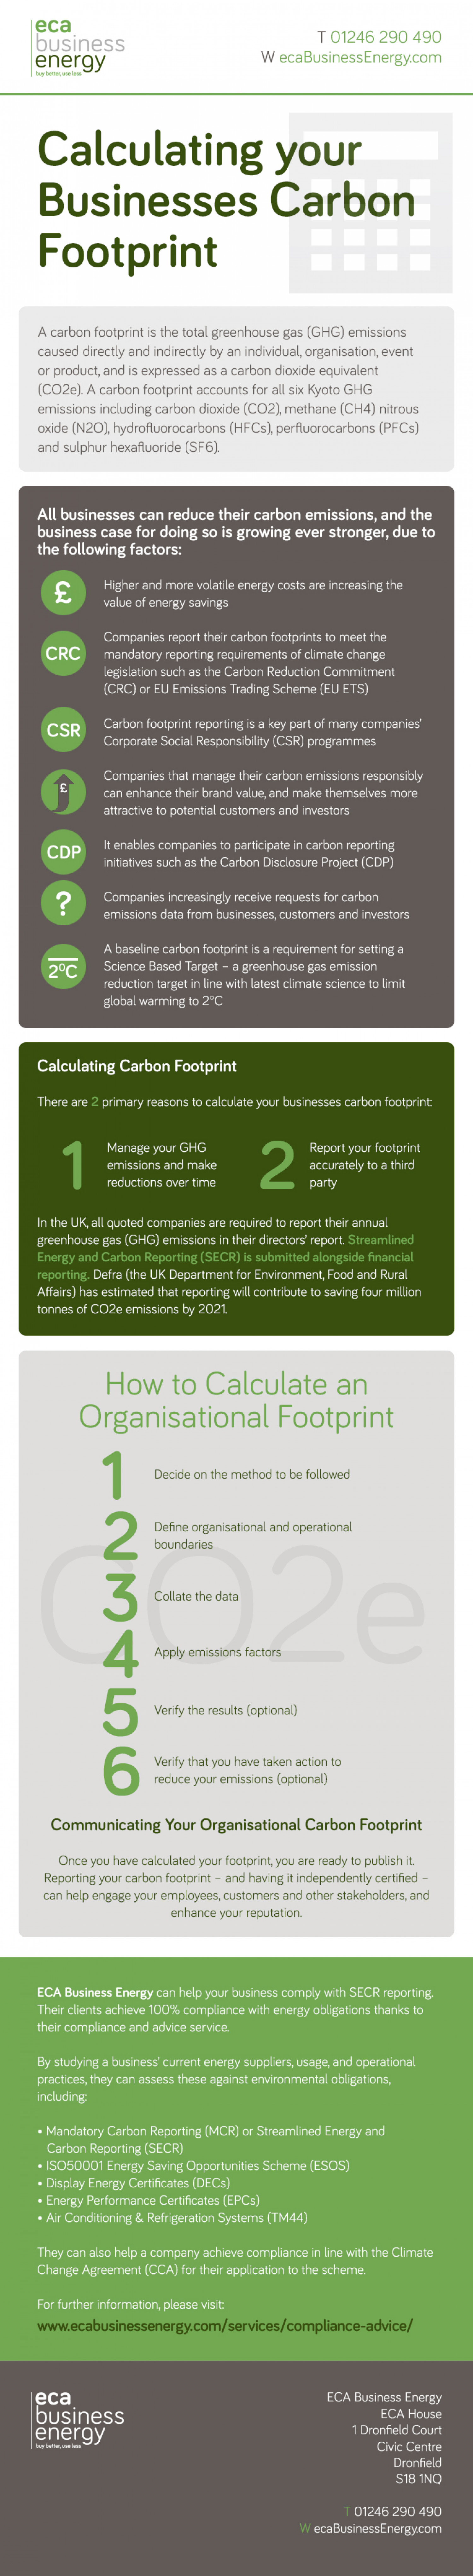 Calculating Your Businesses Carbon Footprint Infographic